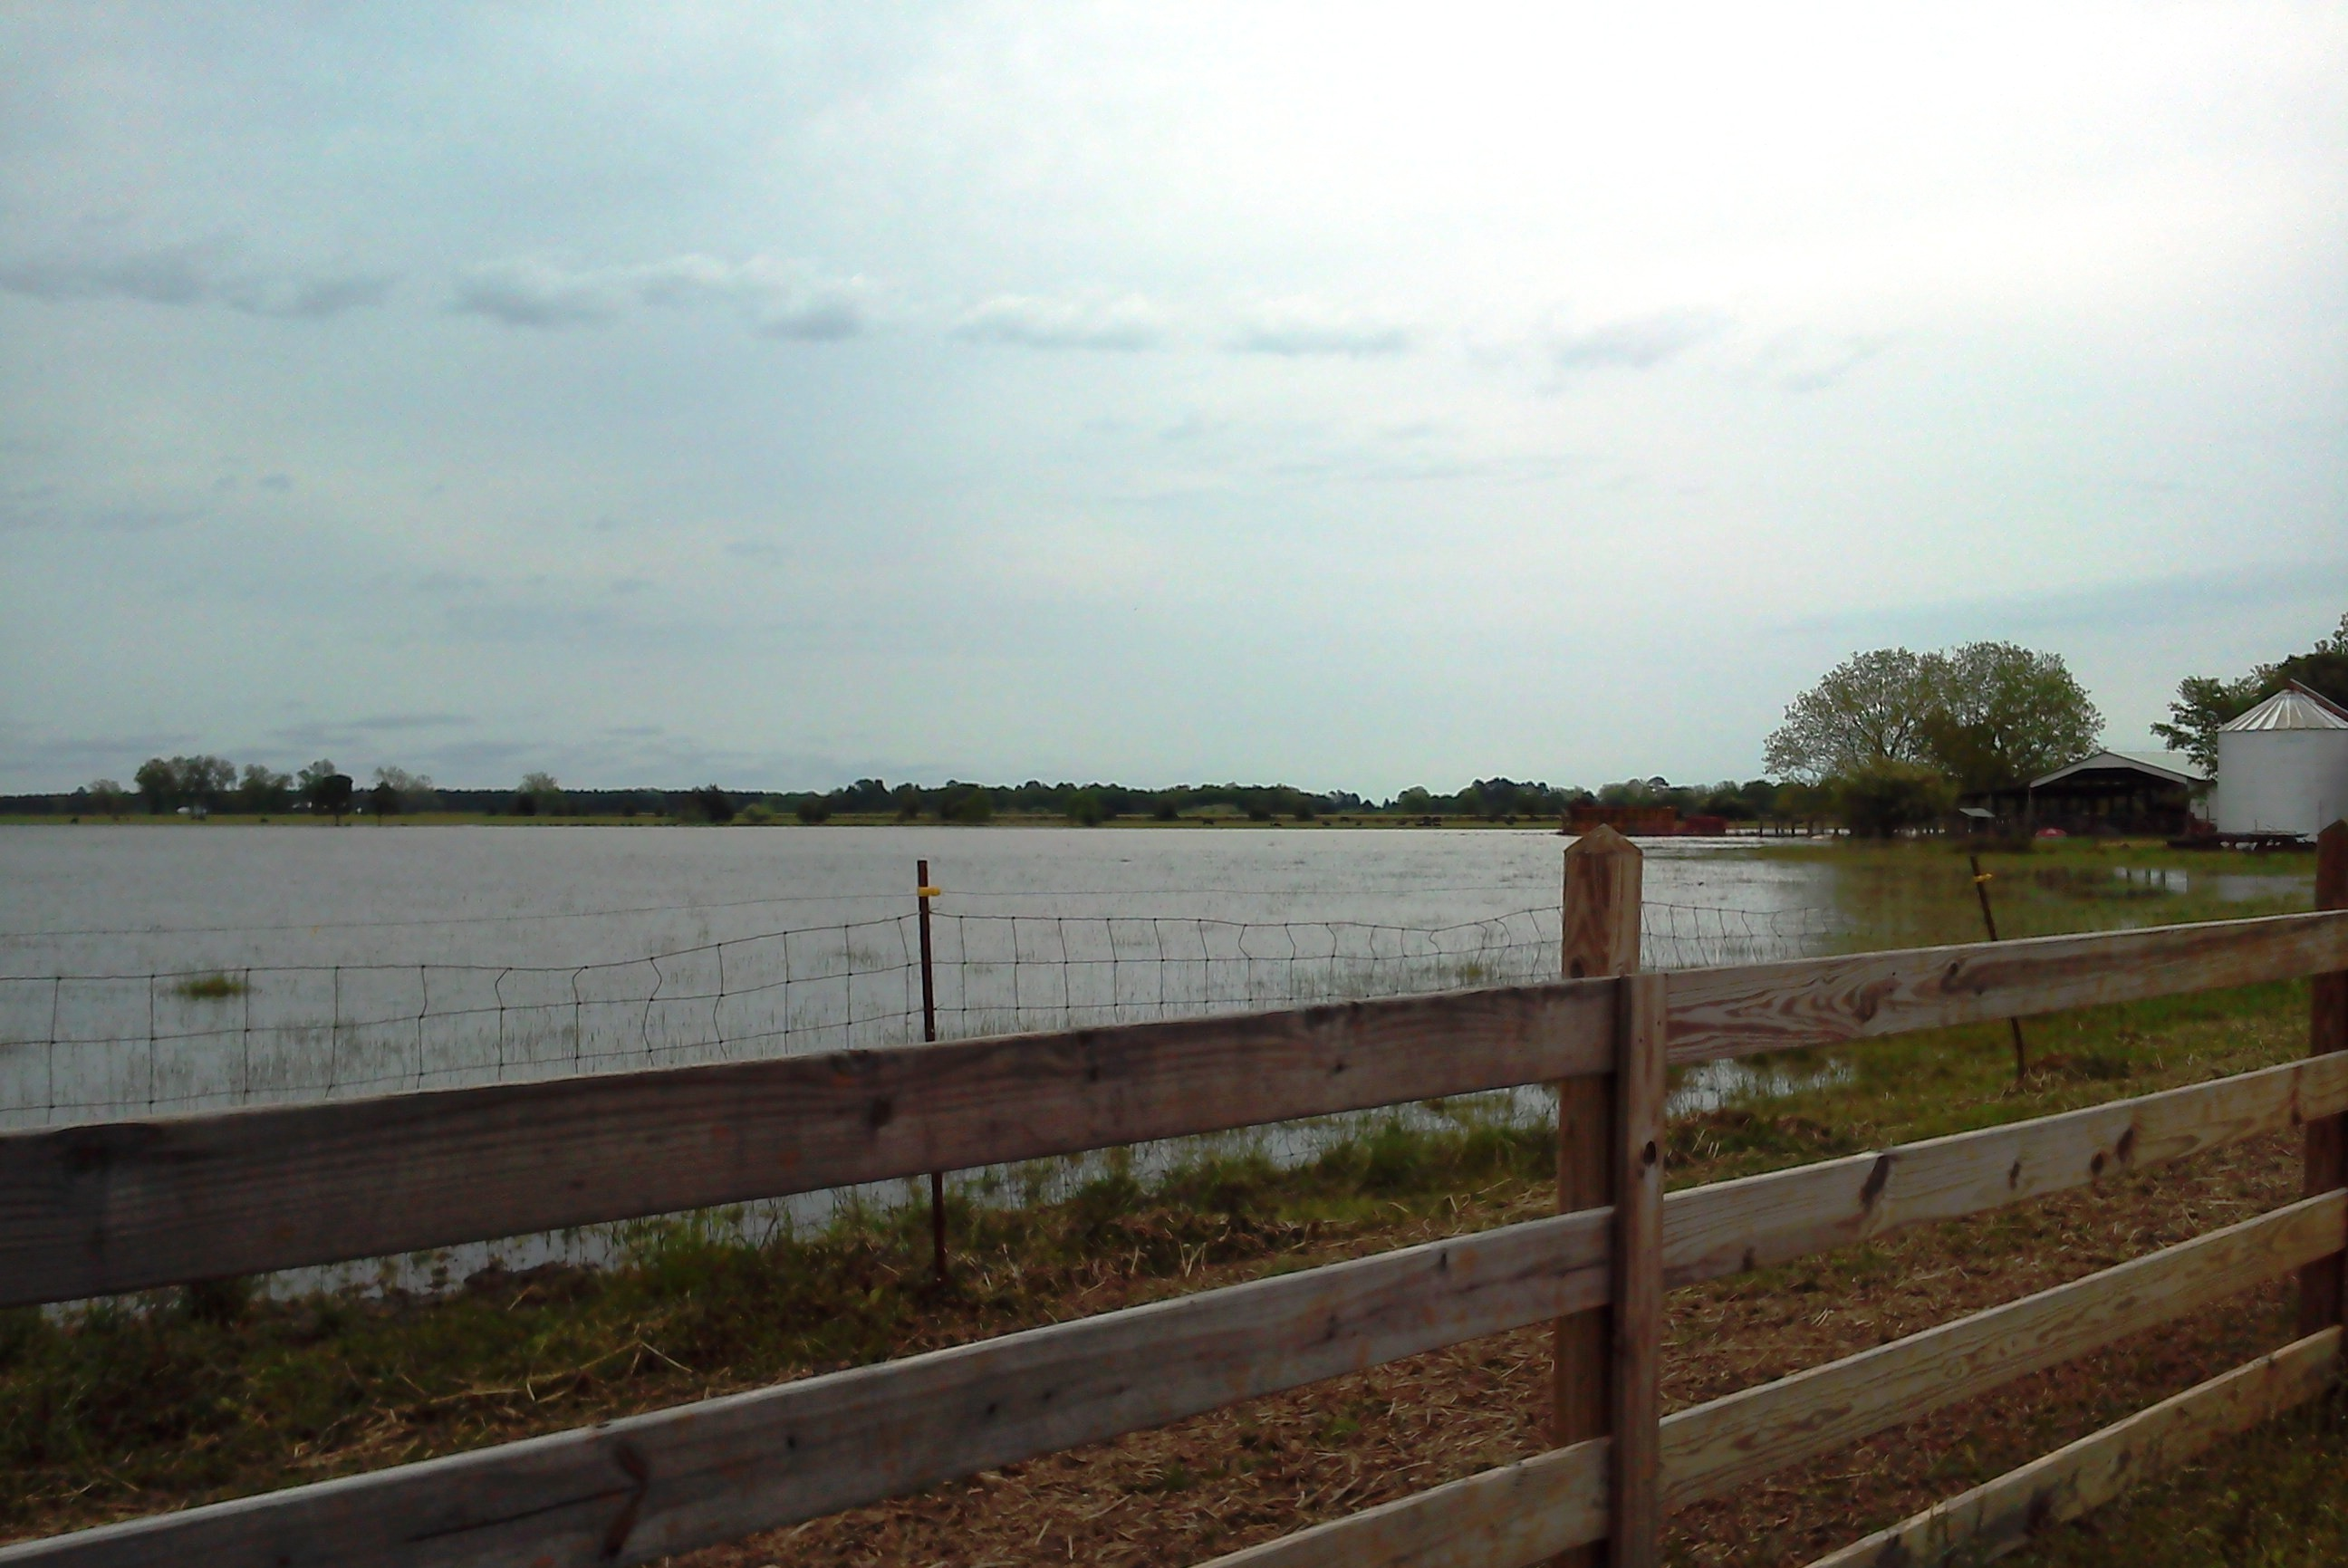 Pasture with several acres of standing water.